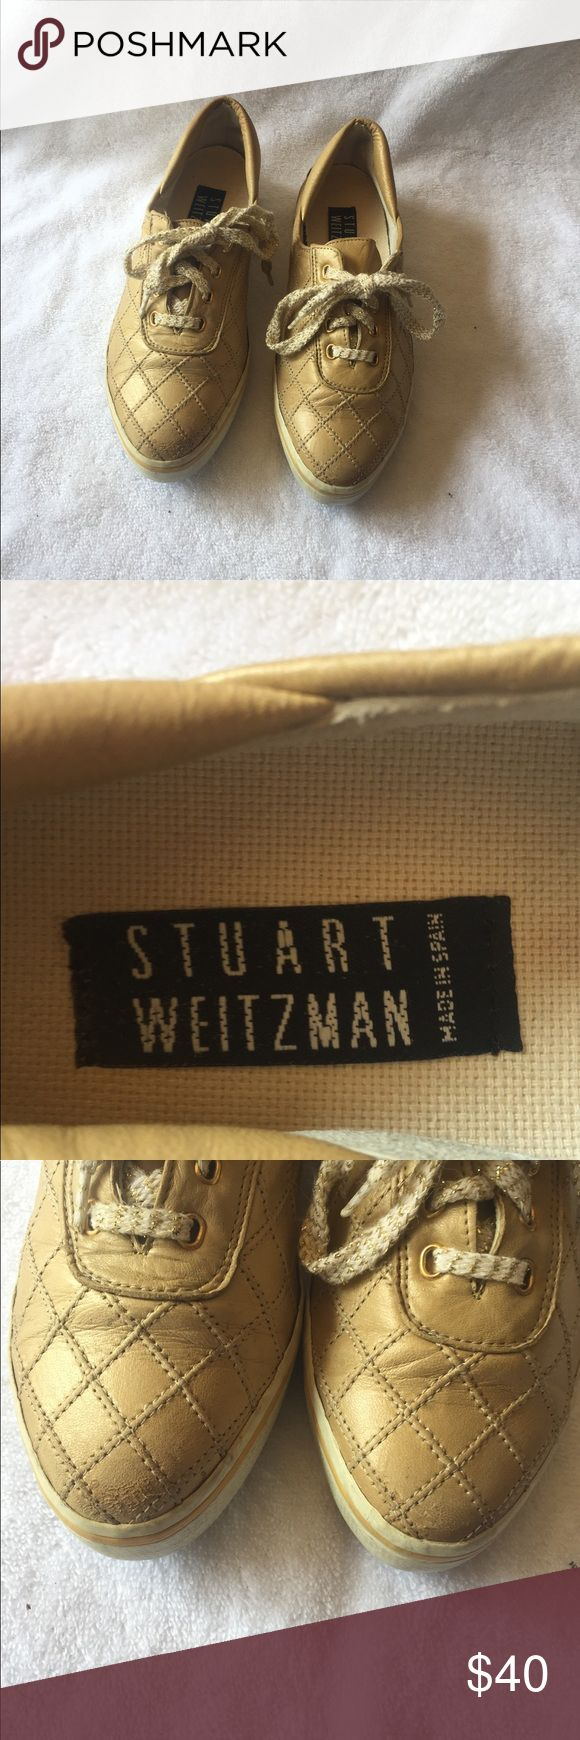 Stuart Weitzman sneakers size 6.5 gold Stuart Weitzmen gold sneakers with gold and white chevron pattern laces. Scuffs on toes. Stuart Weitzman Shoes Sneakers